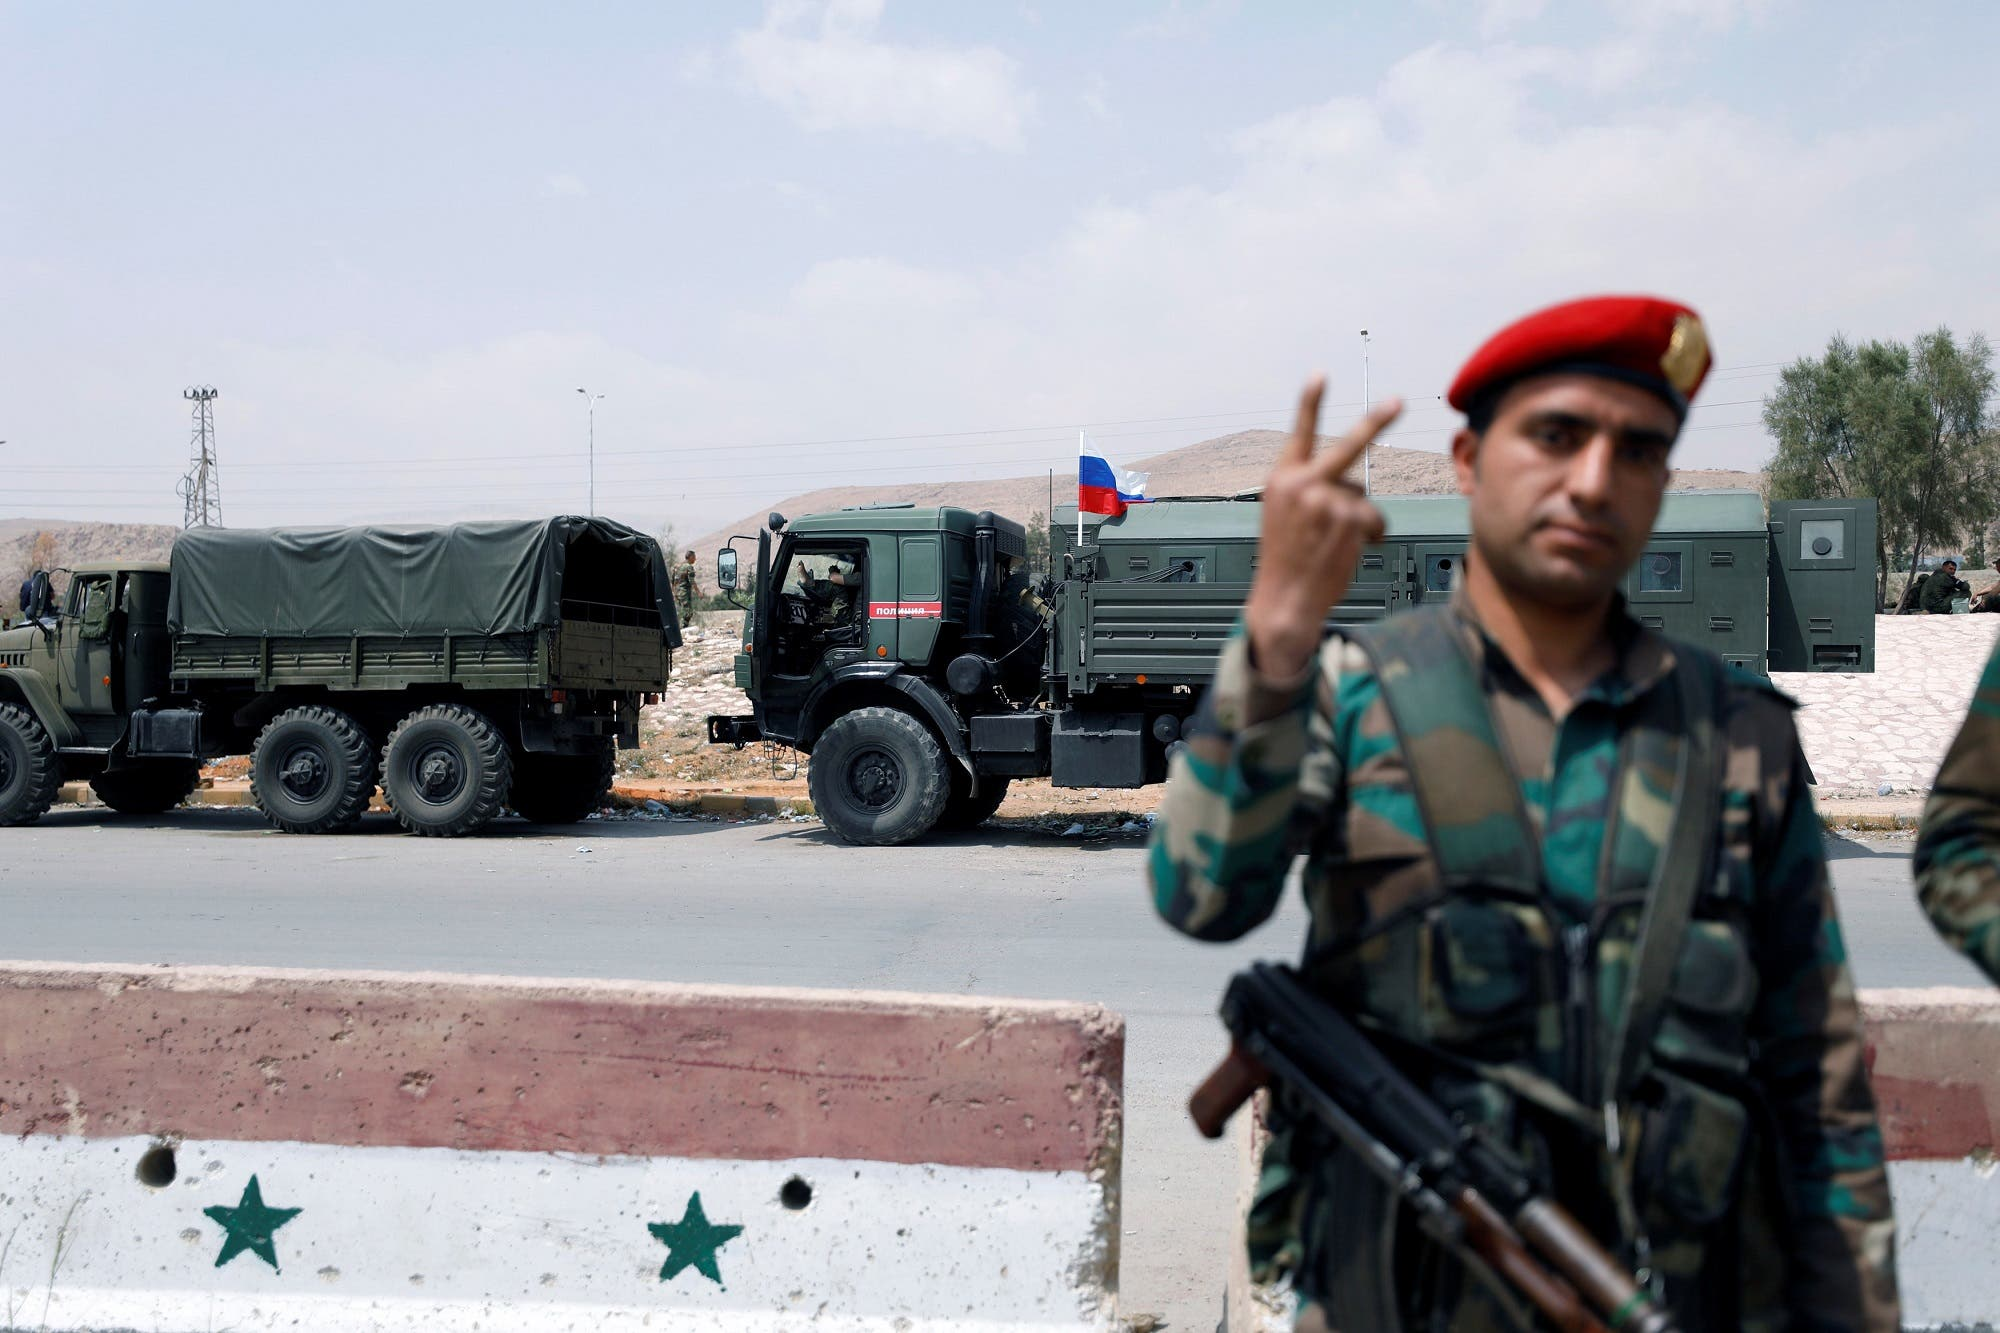 A Syrian Army solider gestures as a Russian flag is seen on a military vehicle, at the entrance of the Wafideen camp in Damascus on April 12, 2018. (Reuters)